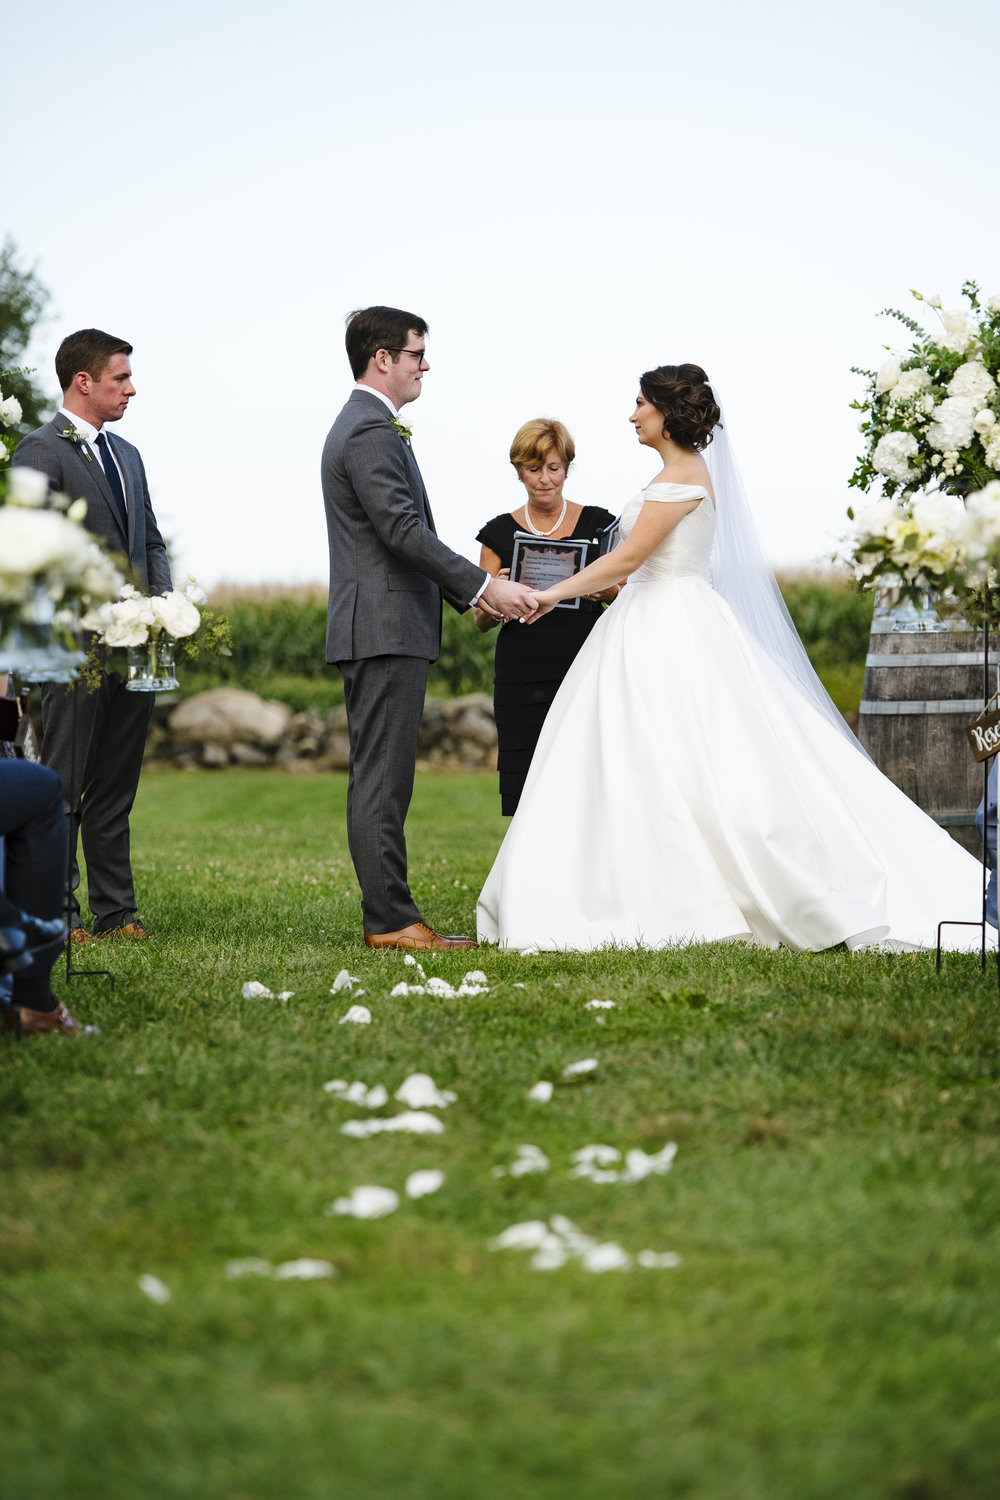 Bride and groom standing at the altar on their wedding day at jonathan edwards winery - Pearl Weddings & Events